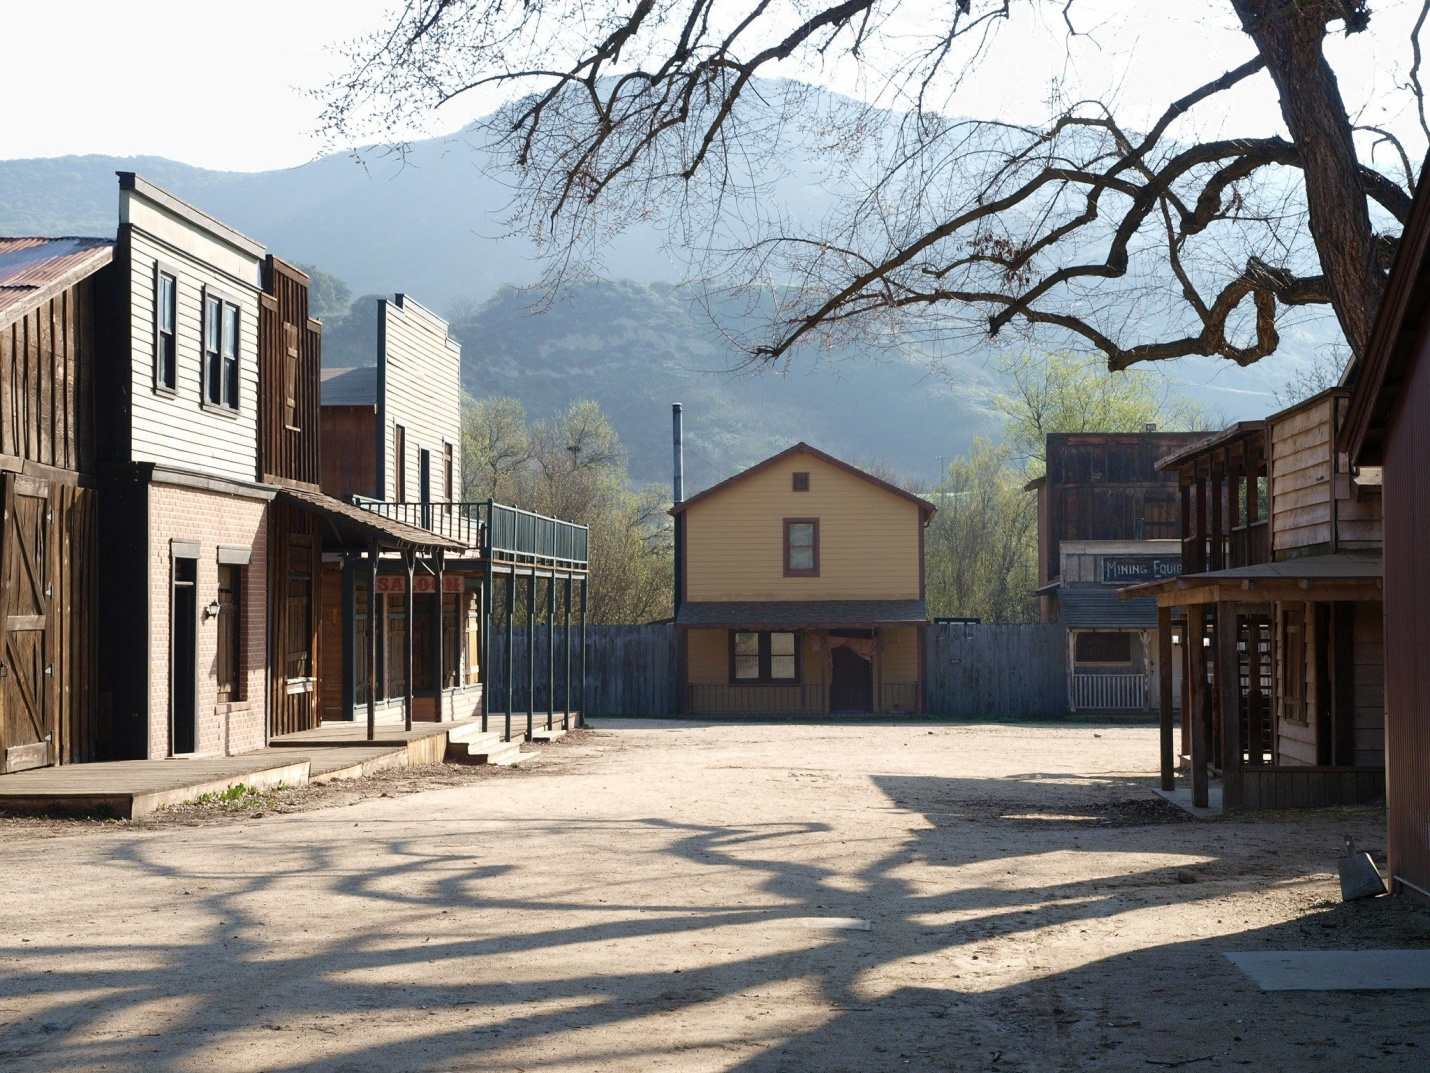 C:\Users\gelo.n\Desktop\Paramount Ranch - Pinterest.jpg